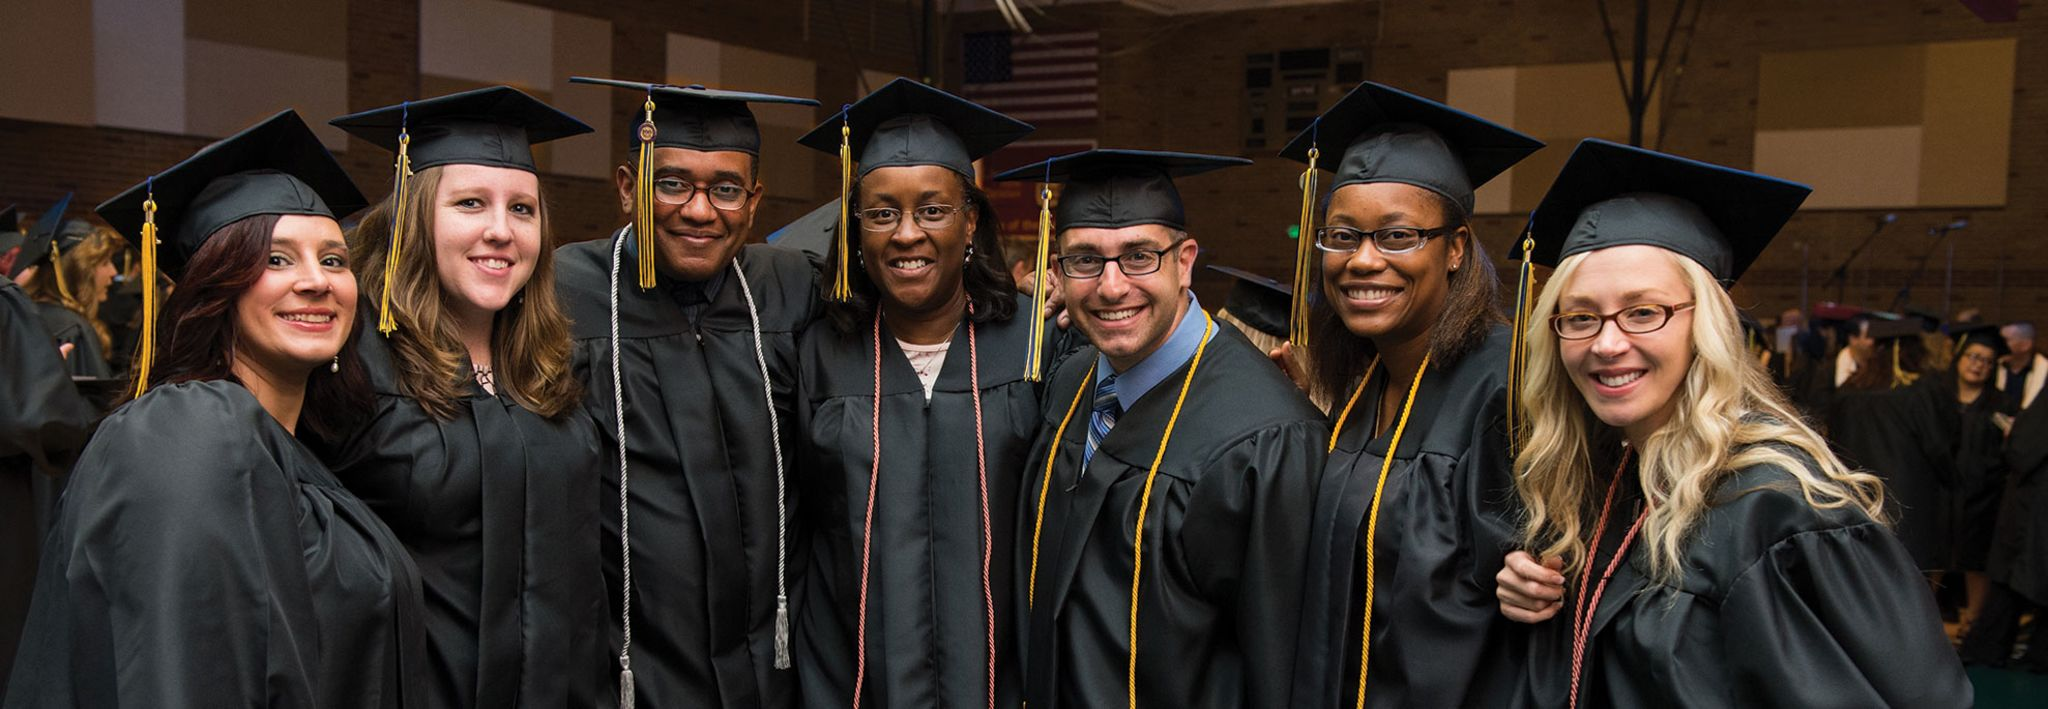 A group of CCU students is posing for a photo at graduation.